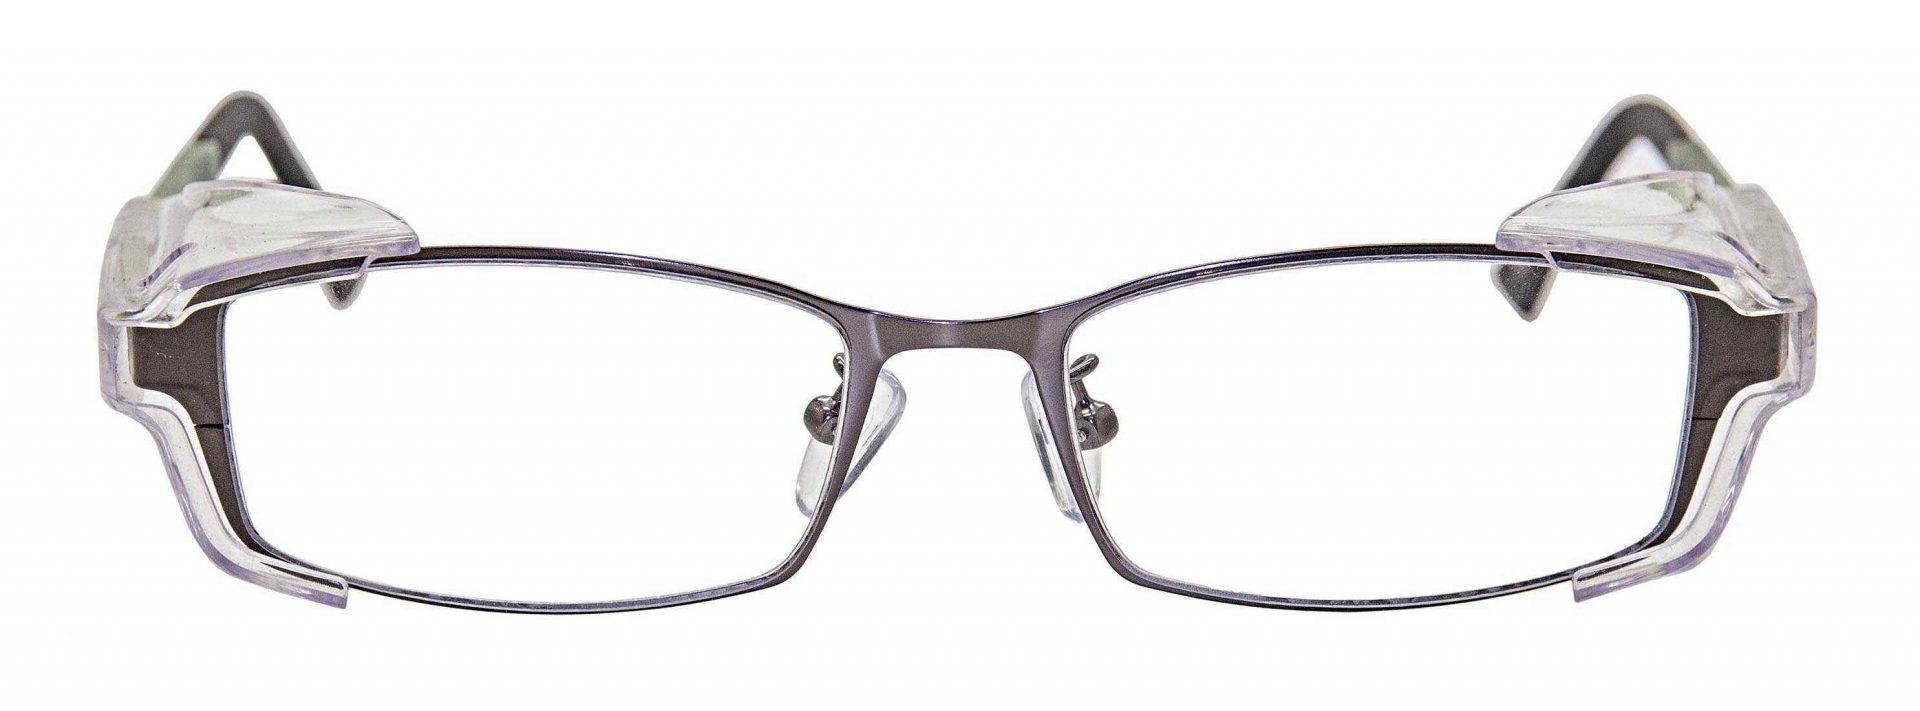 WorkSafe spectacles: Safety Glasses Venus 01 2970x1100 1